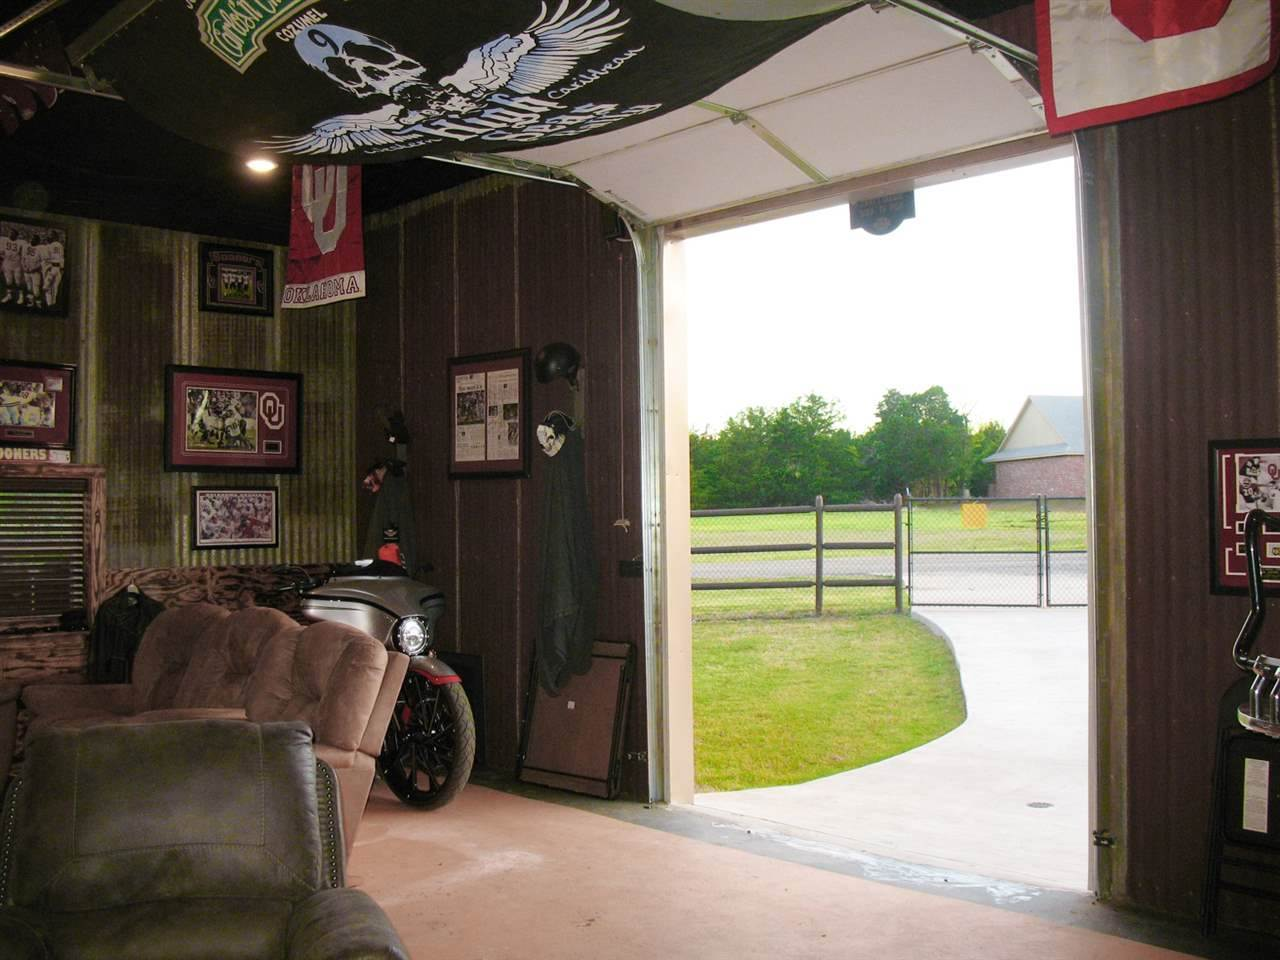 106 Hat Creek Xing, Stillwater, OK 74074